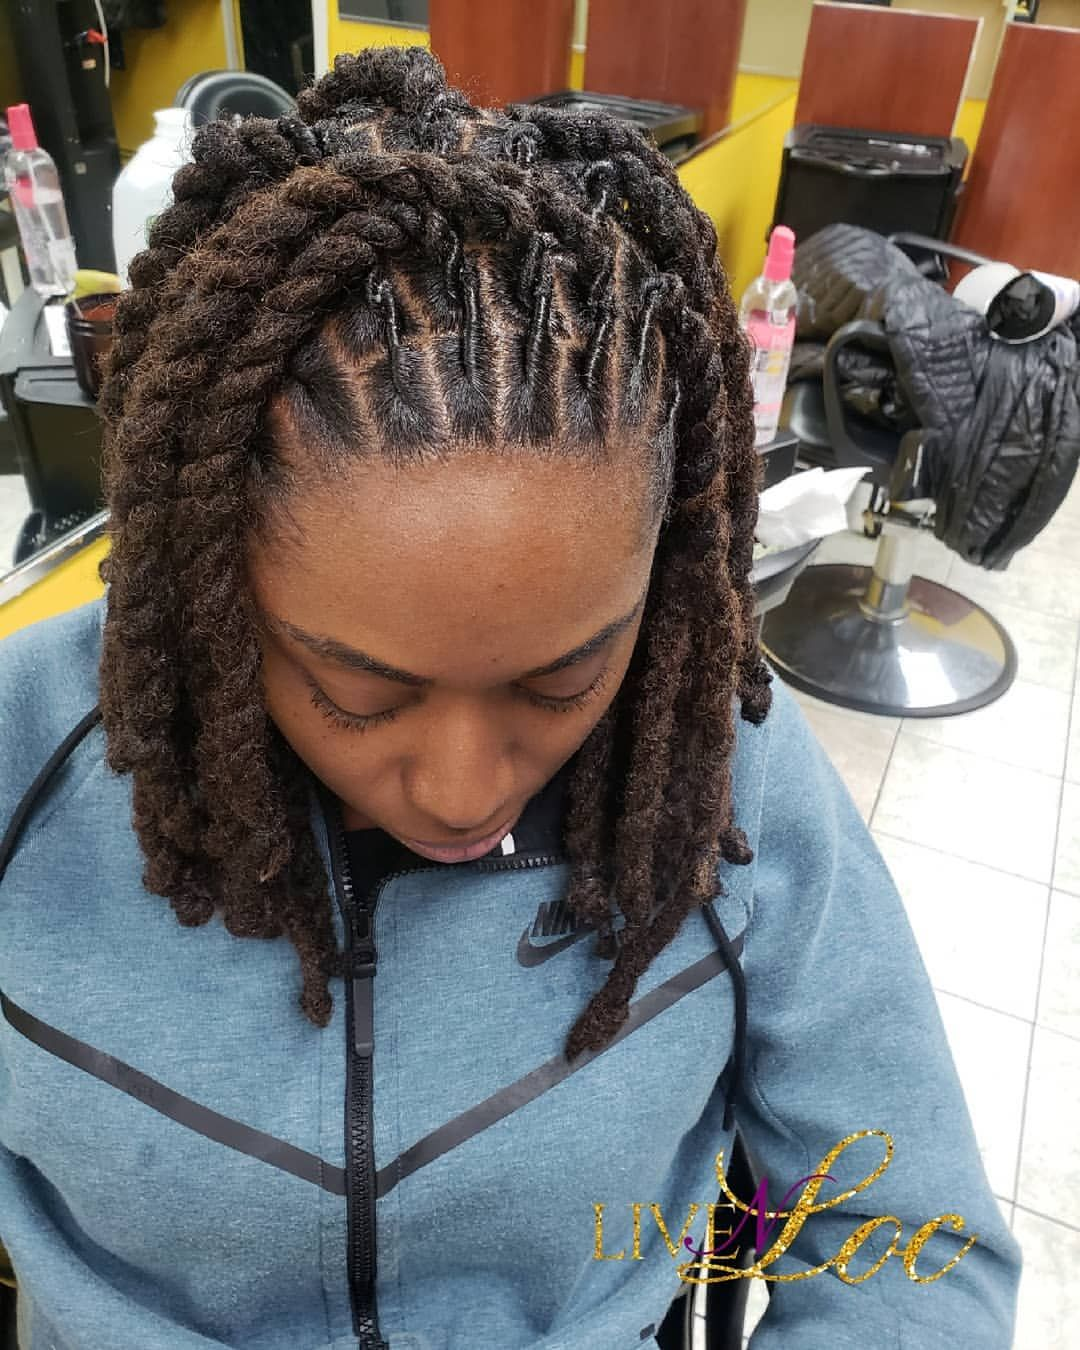 Follow The Link In My Bio To Book Your Next Appt Teamlocs Ropetwist Teamdreads Locsrus Brookly Dreadlock Hairstyles Black Hair Styles Locs Hairstyles